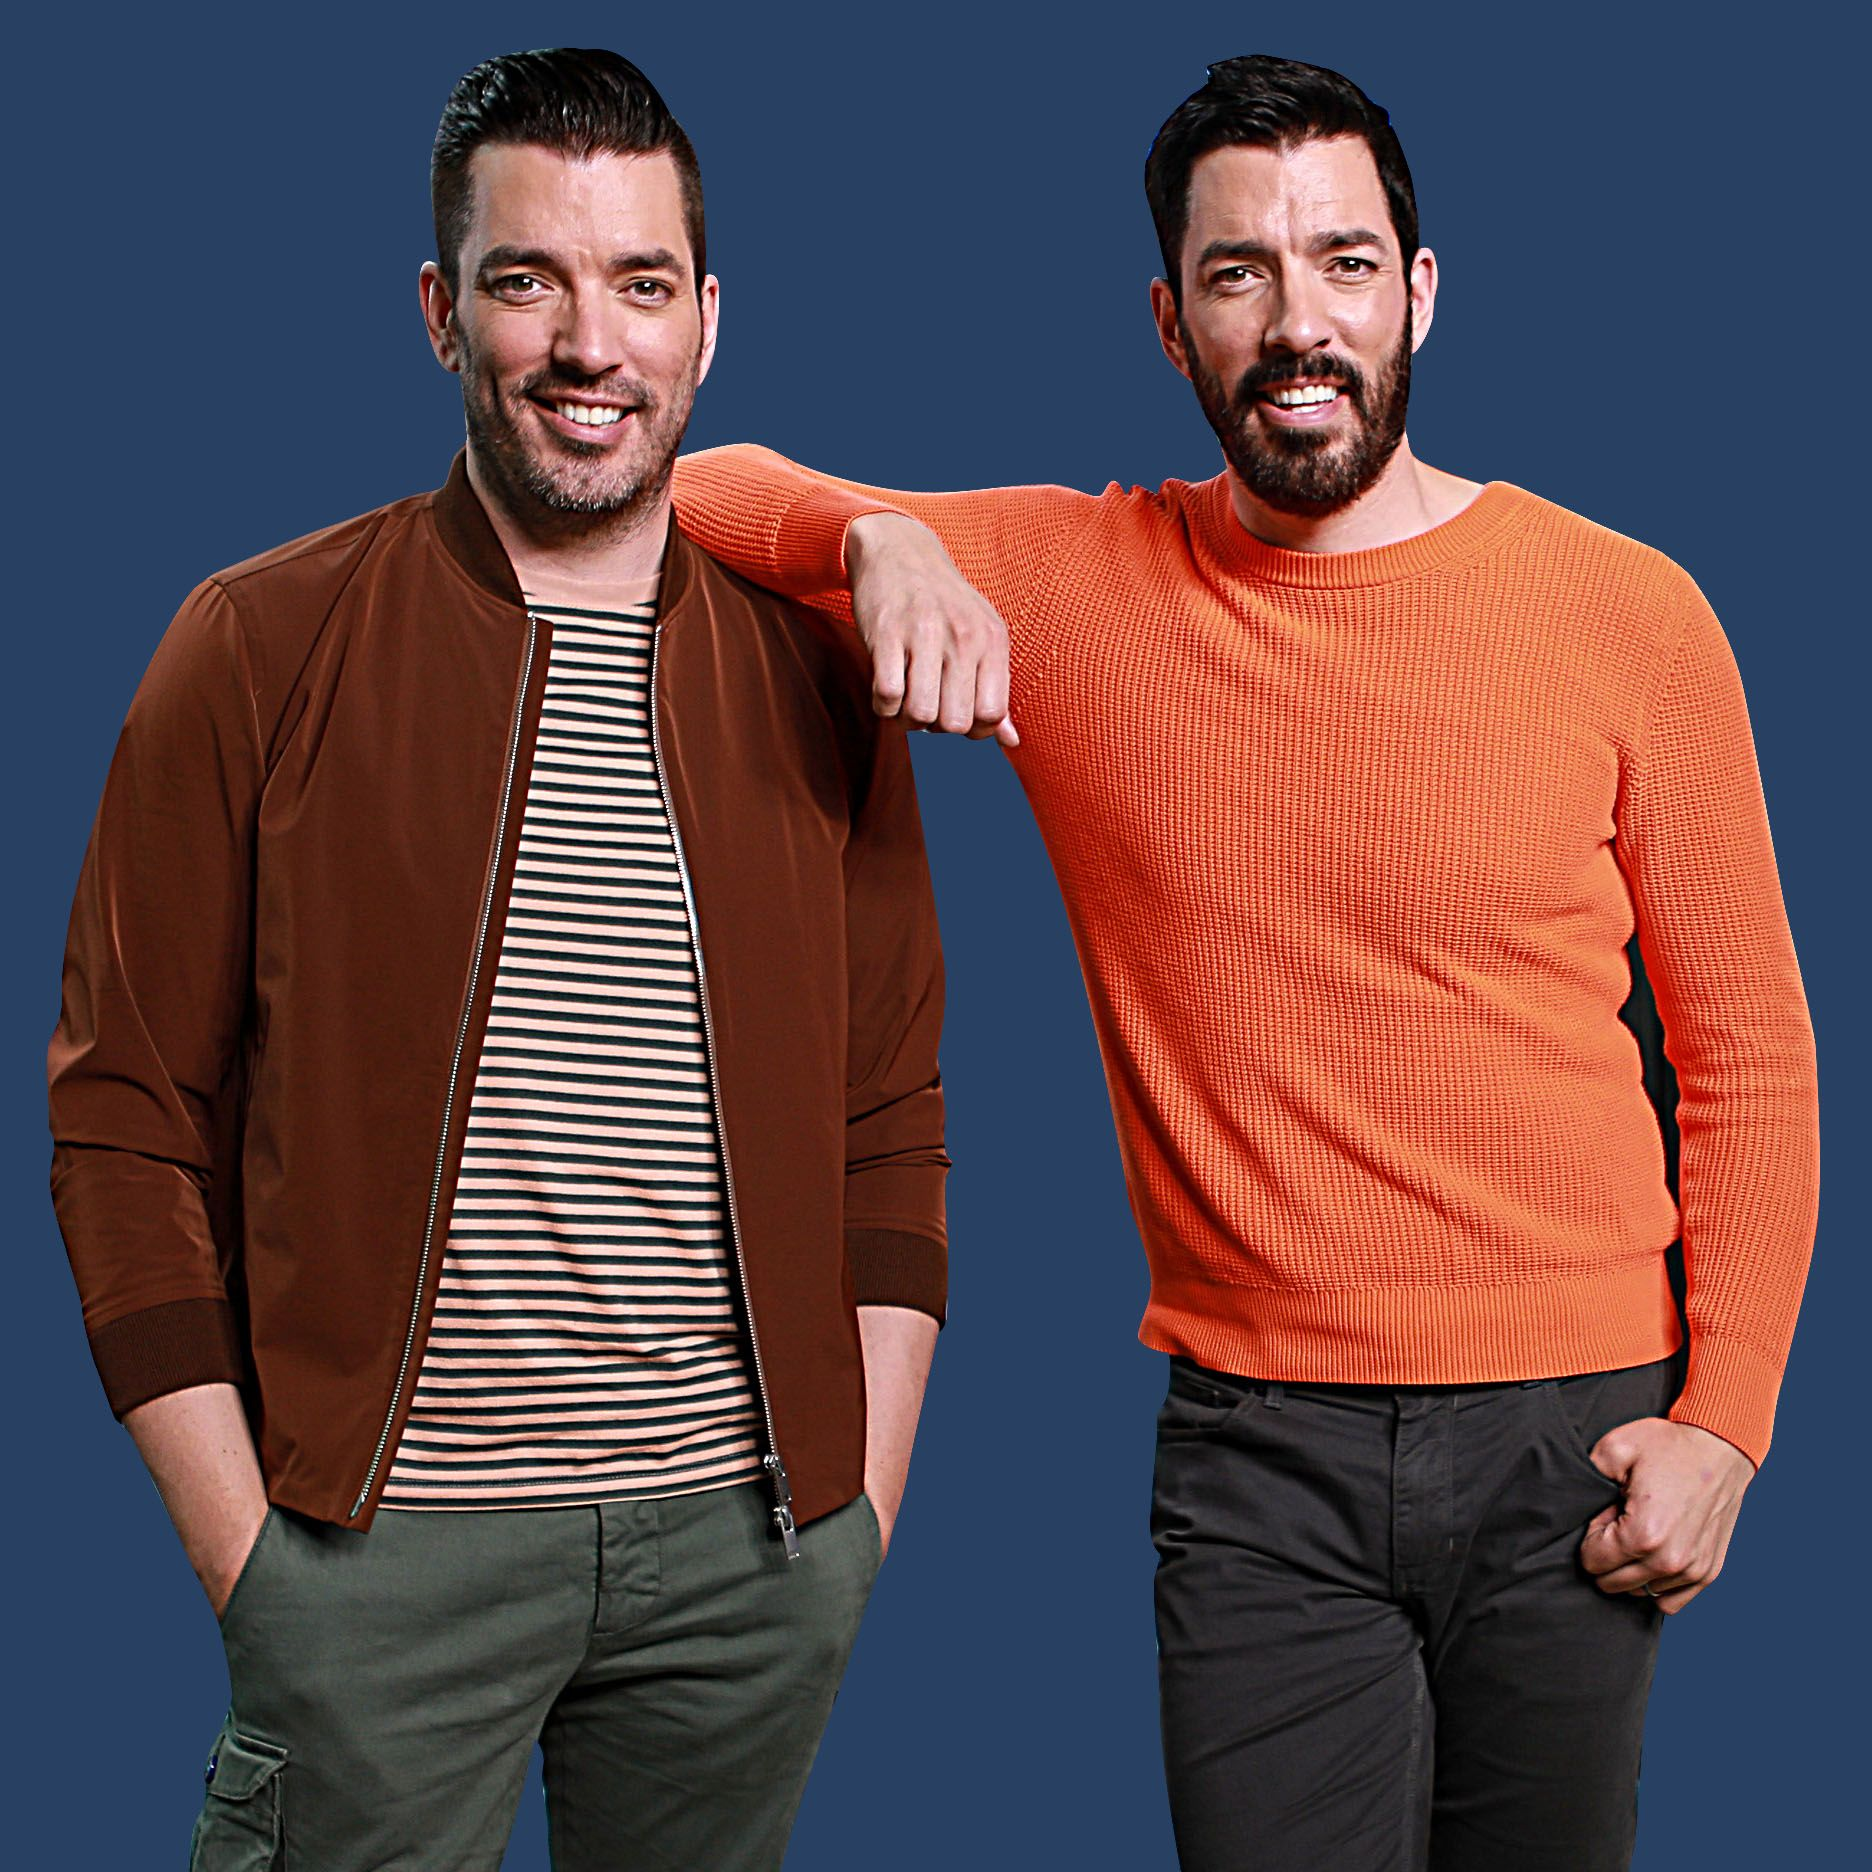 The Property Brothers Just Shared Their New Magazine's Title and Tagline